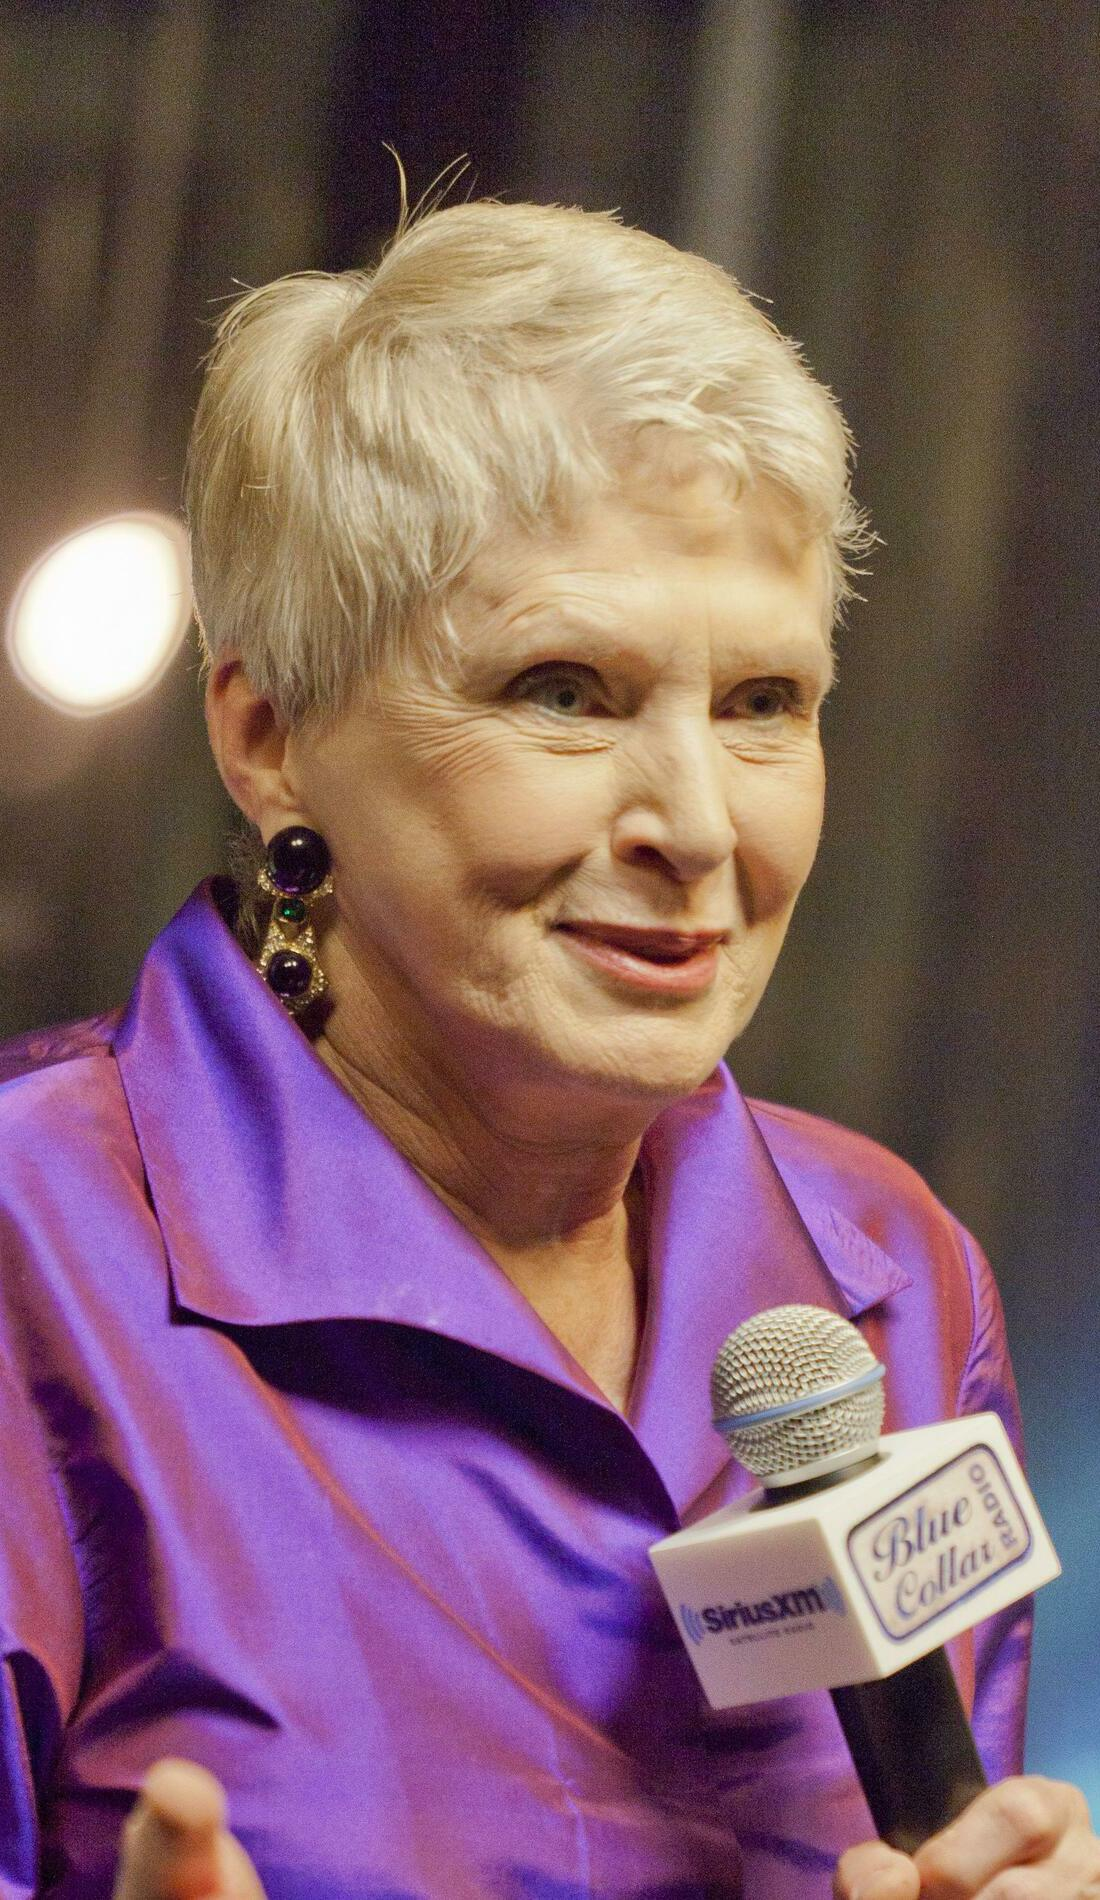 A Jeanne Robertson live event